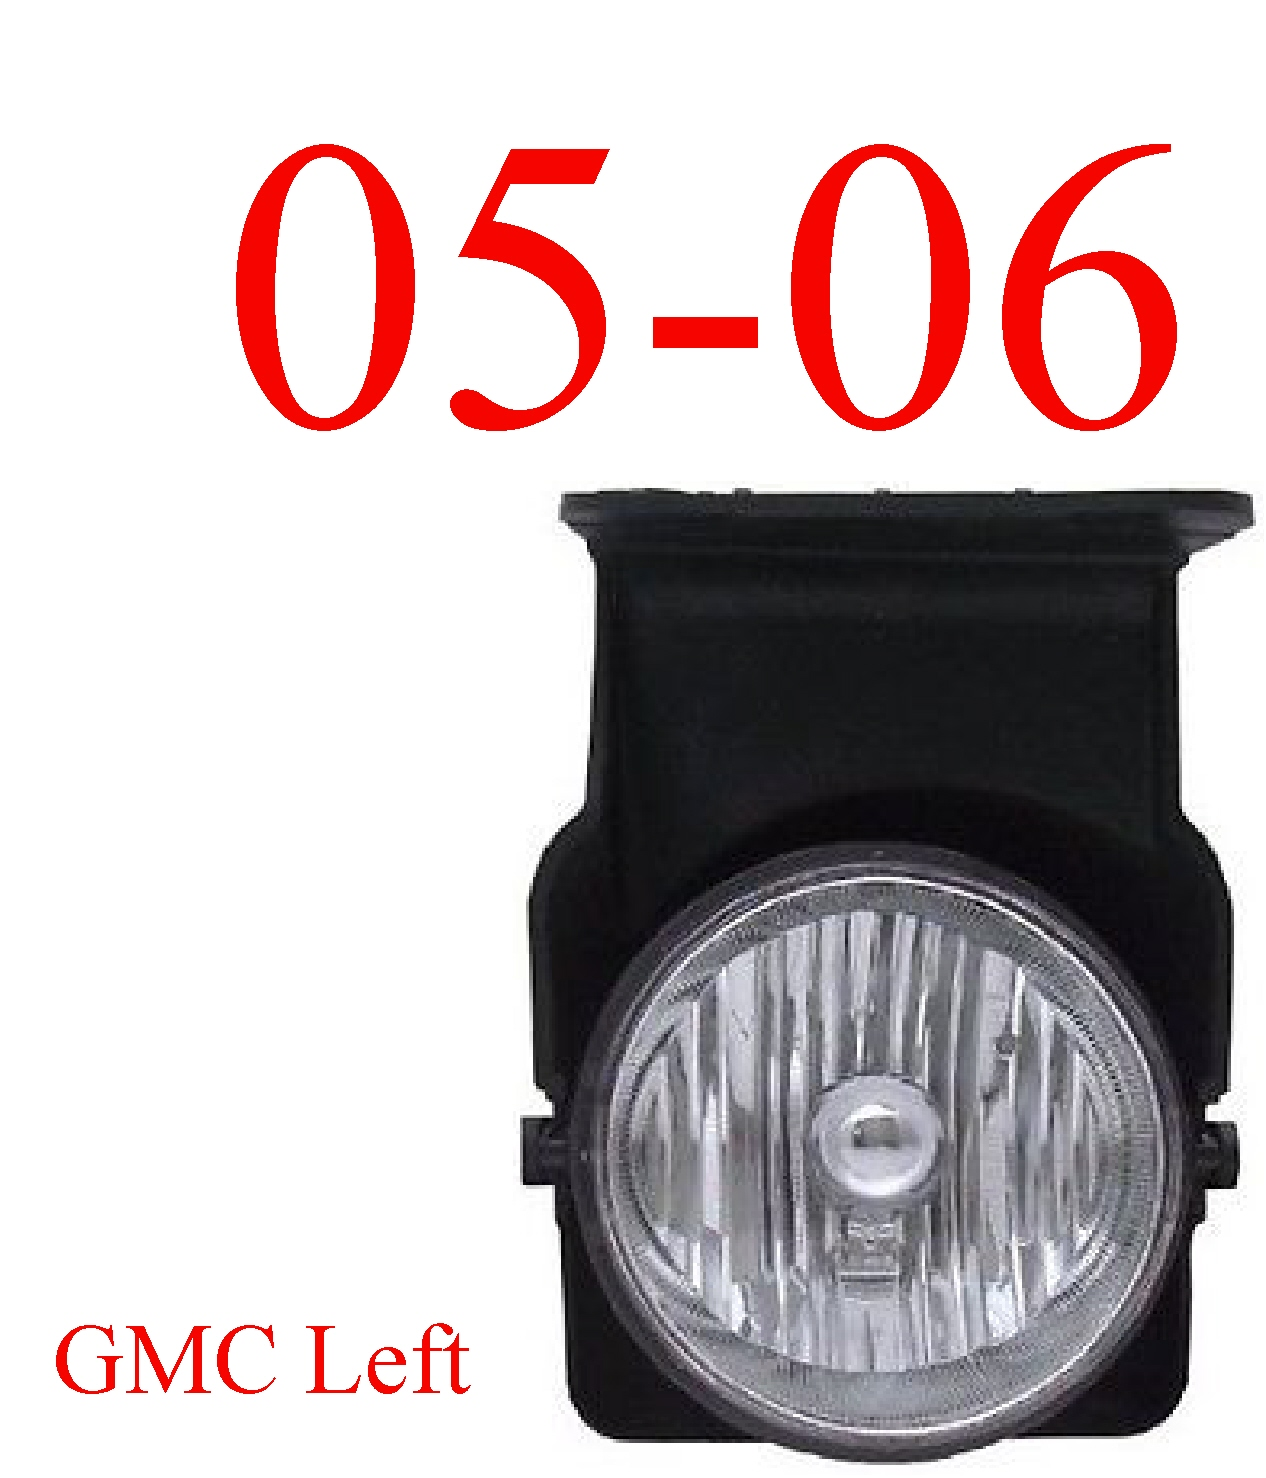 05-06 GMC Truck Left Fog Light Assembly